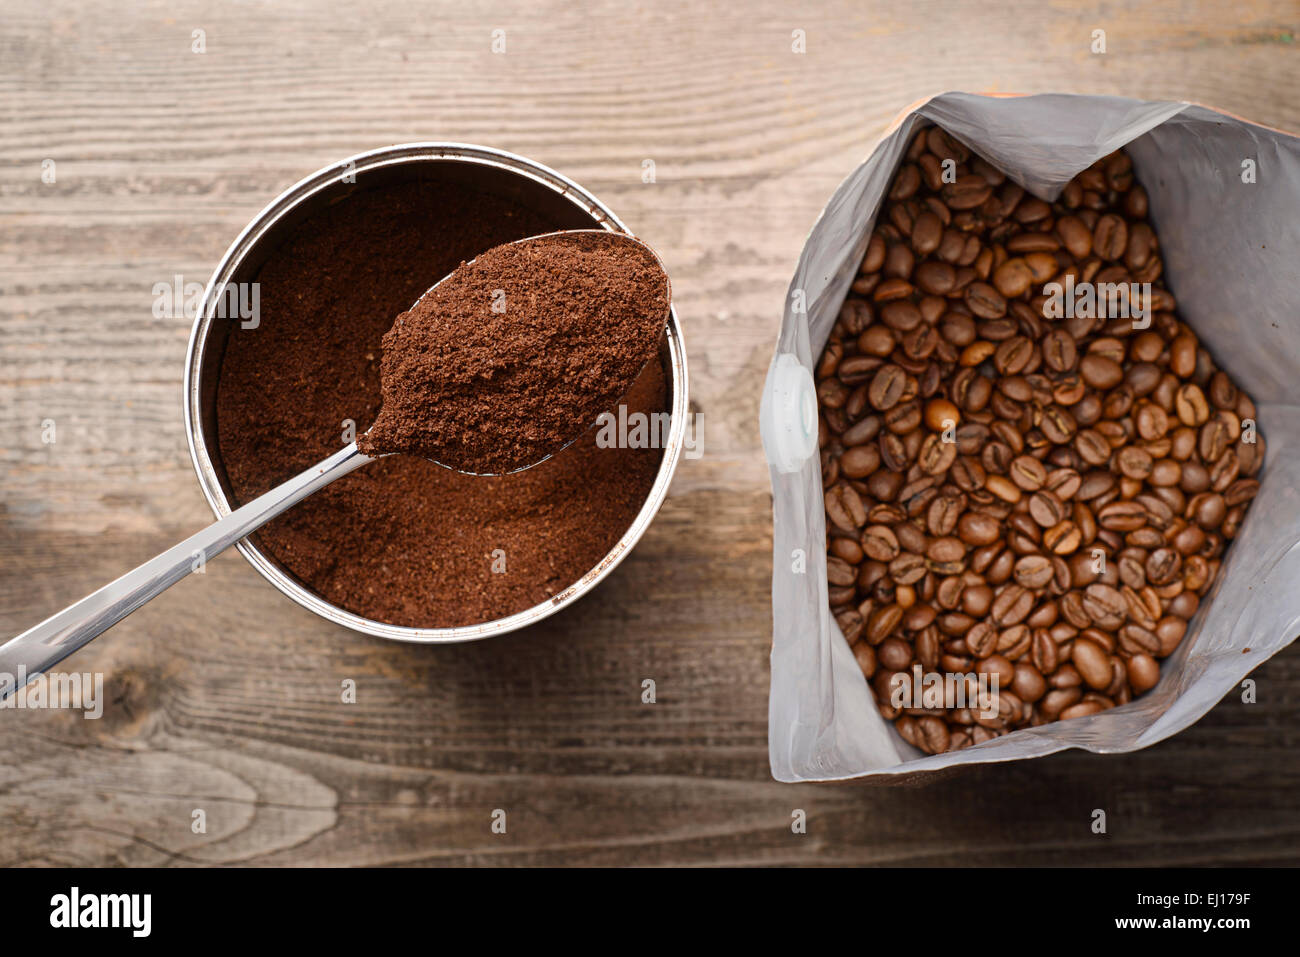 coffee beans and ground coffee on wooden background - Stock Image